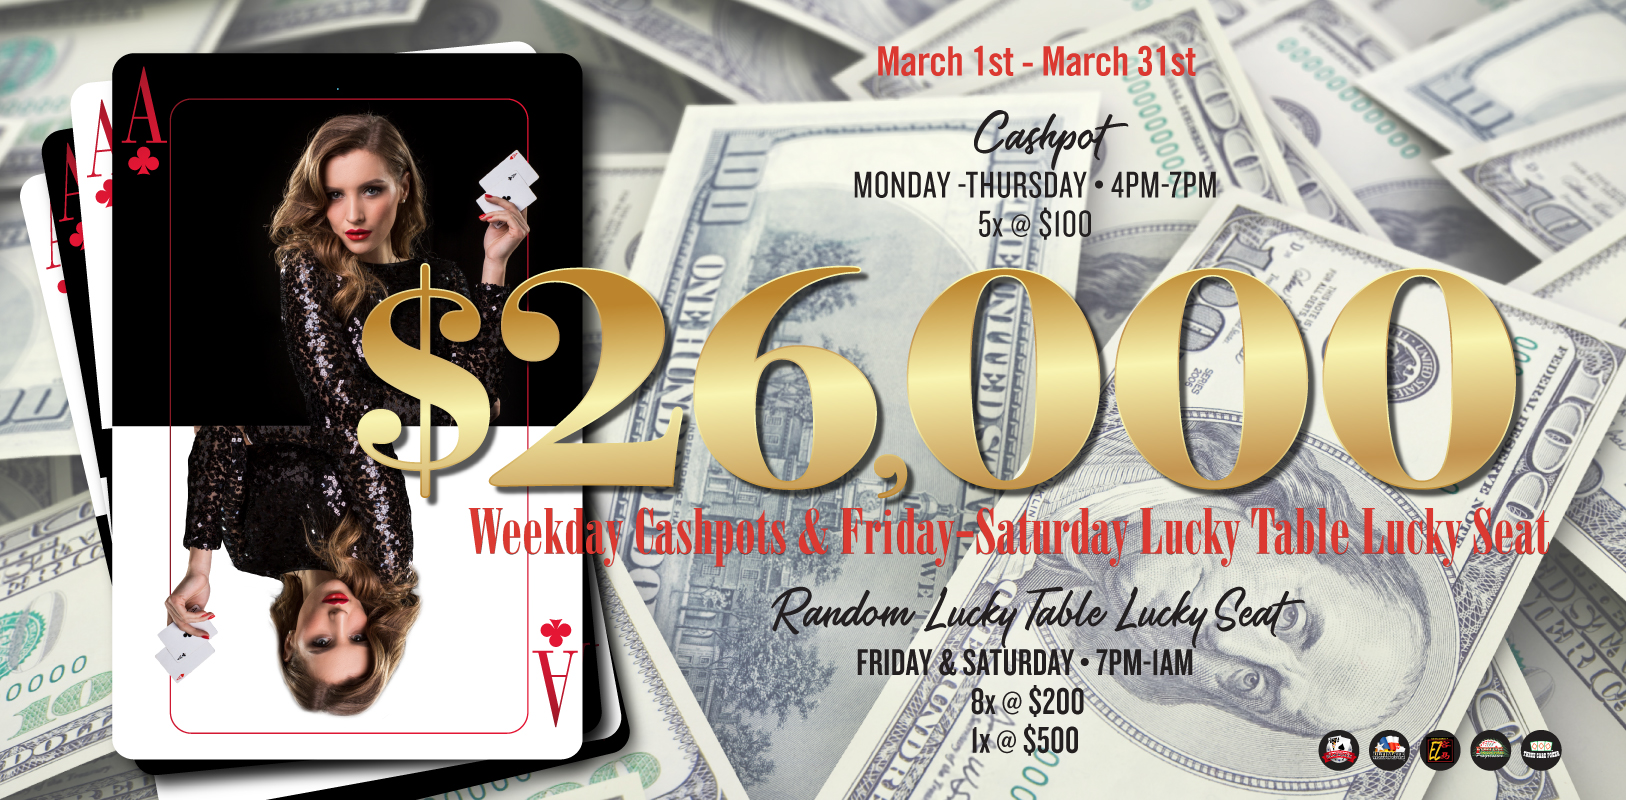 $26,000 Weekday Cash Pots & Friday-Saturday Lucky Table Lucky Seat